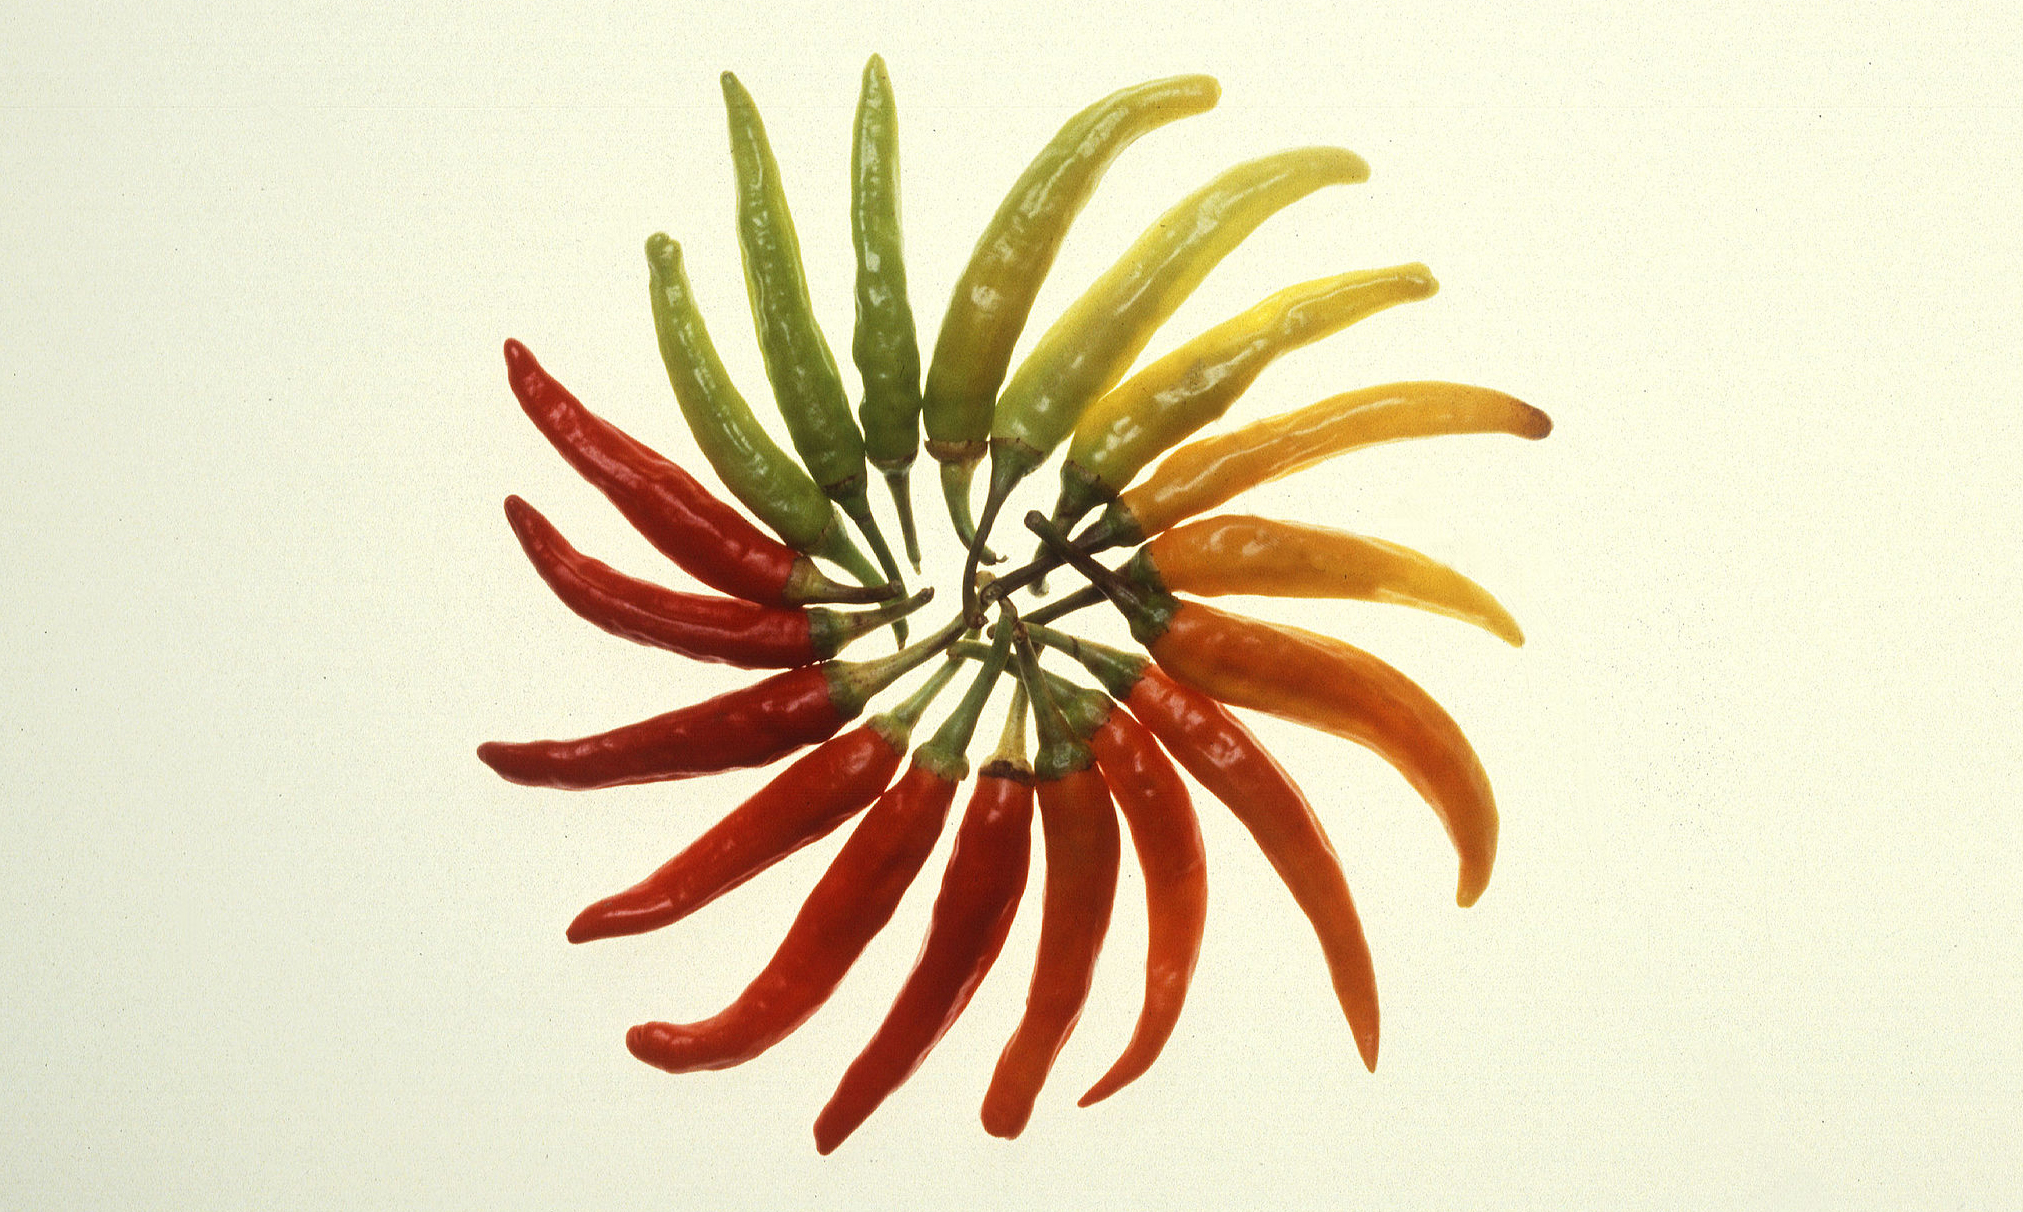 http://commons.wikimedia.org/wiki/File:Charleston_Hot_peppers_usda_original.jpg